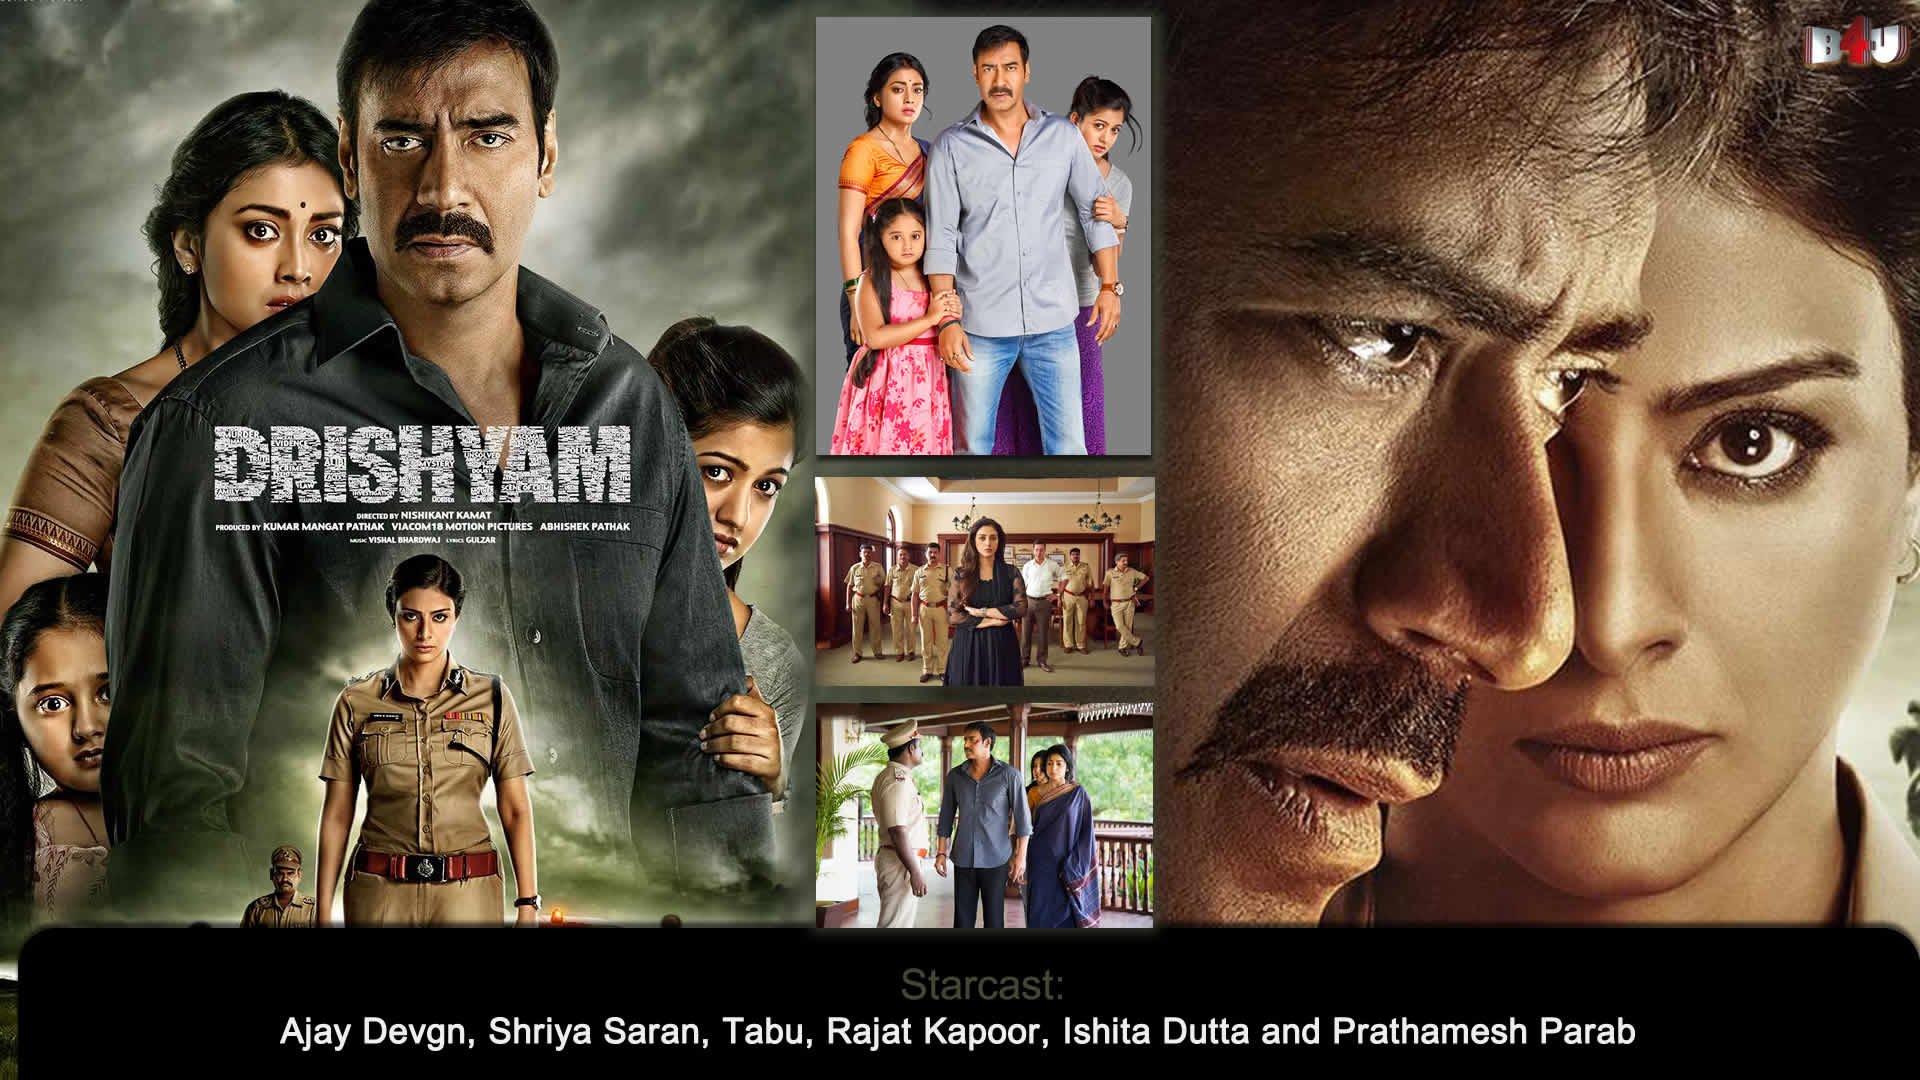 Drishyam 2015 Dvd The New Worst Witch Episode 1